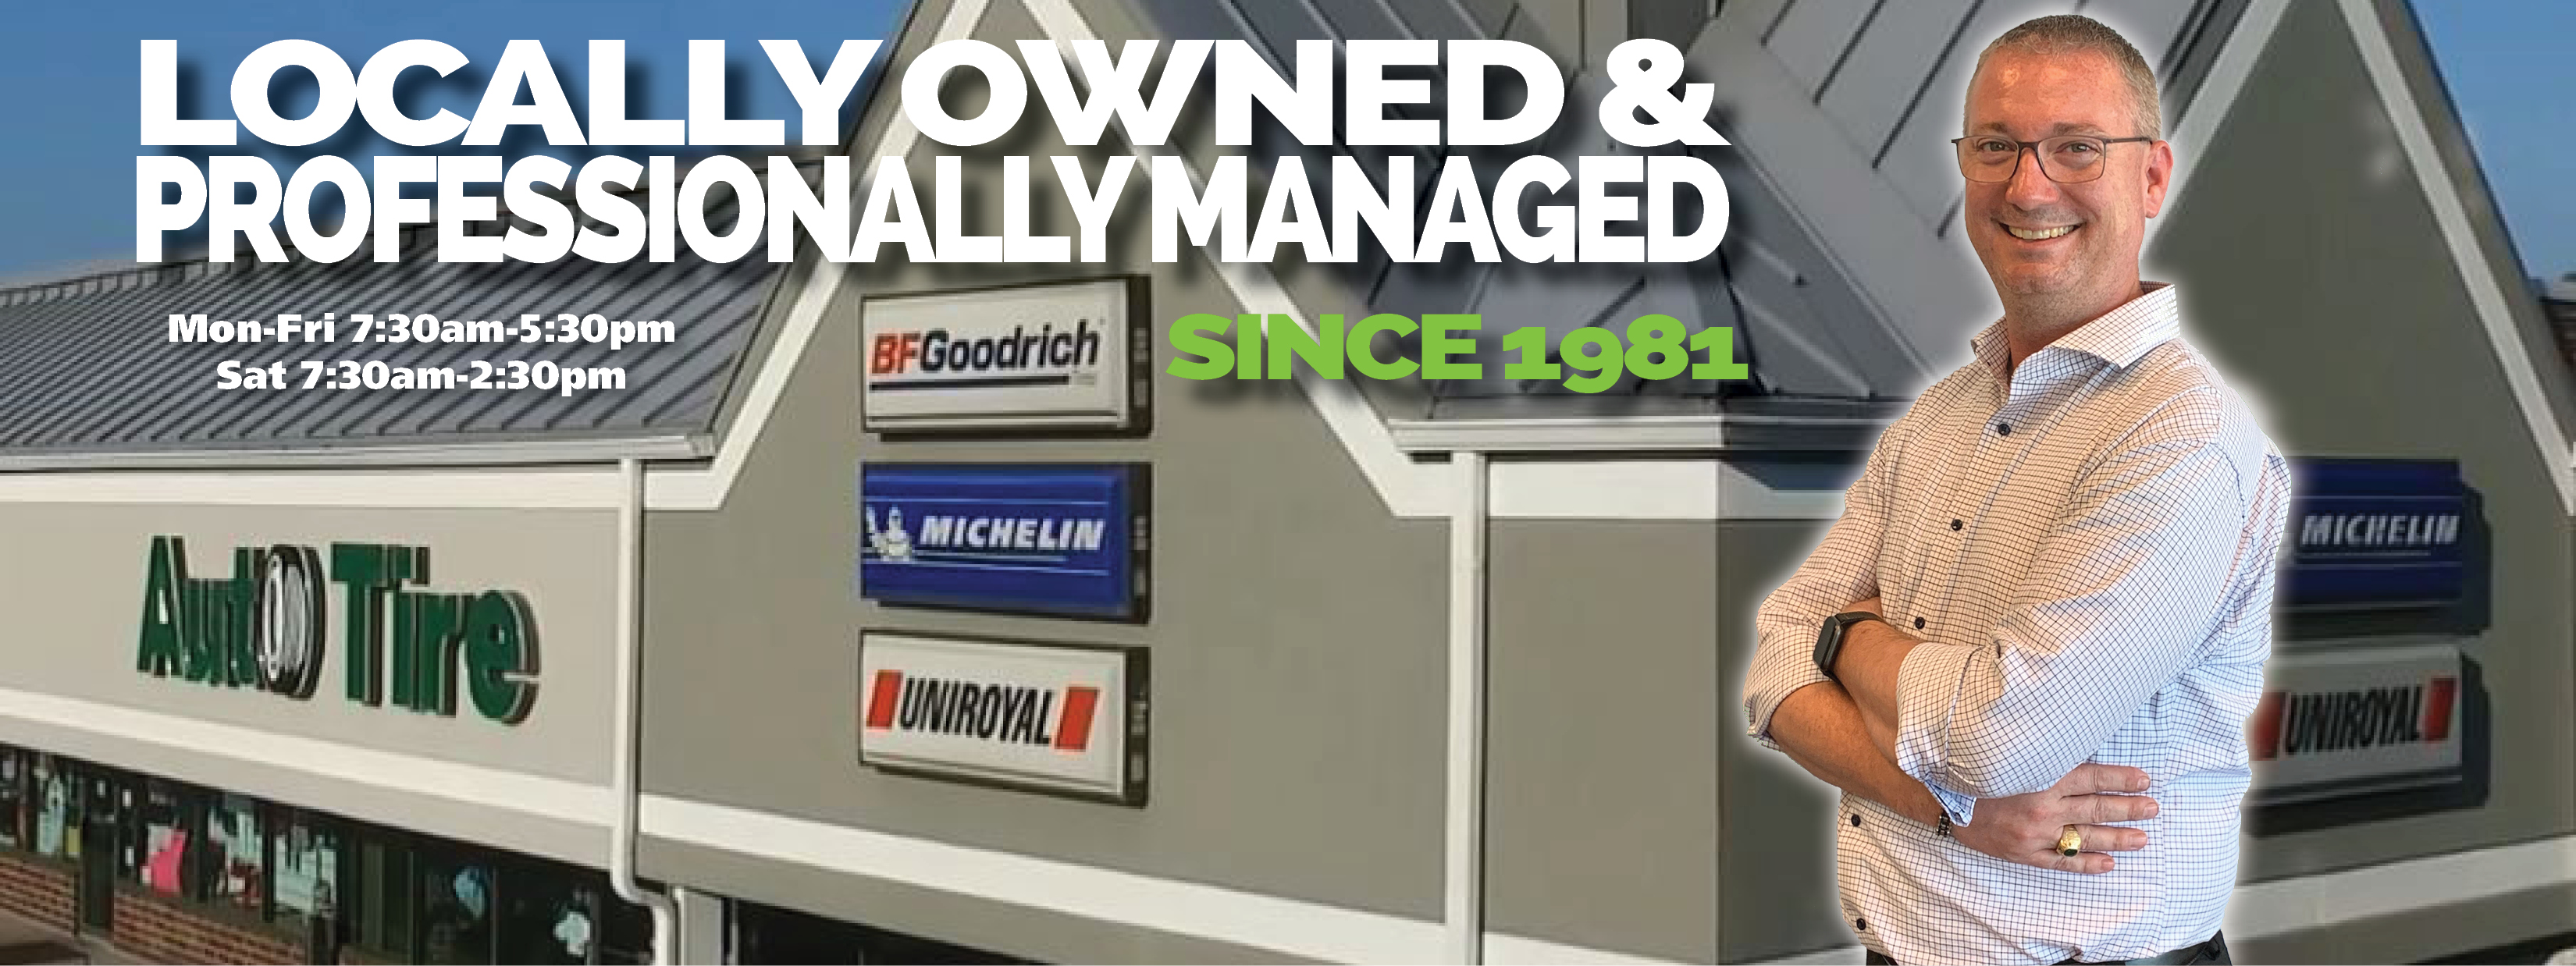 Locally Owned & Professionally Managed